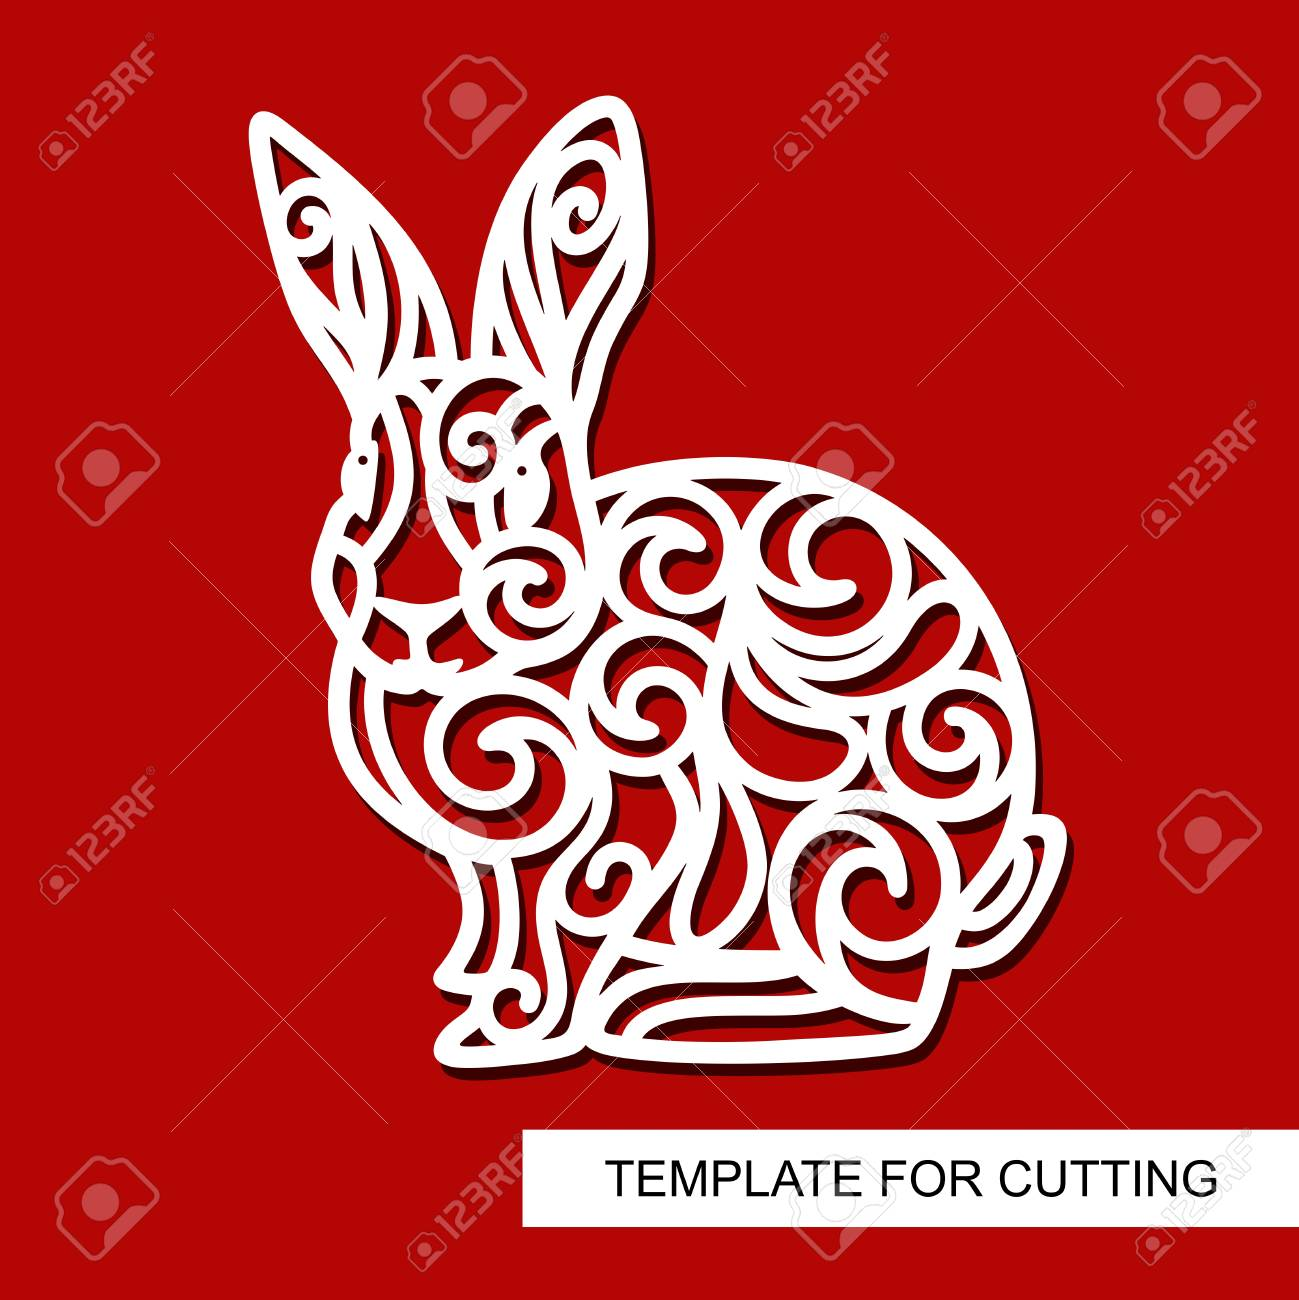 Silhouette Of Rabbit Decor For Easter Template For Laser Cutting